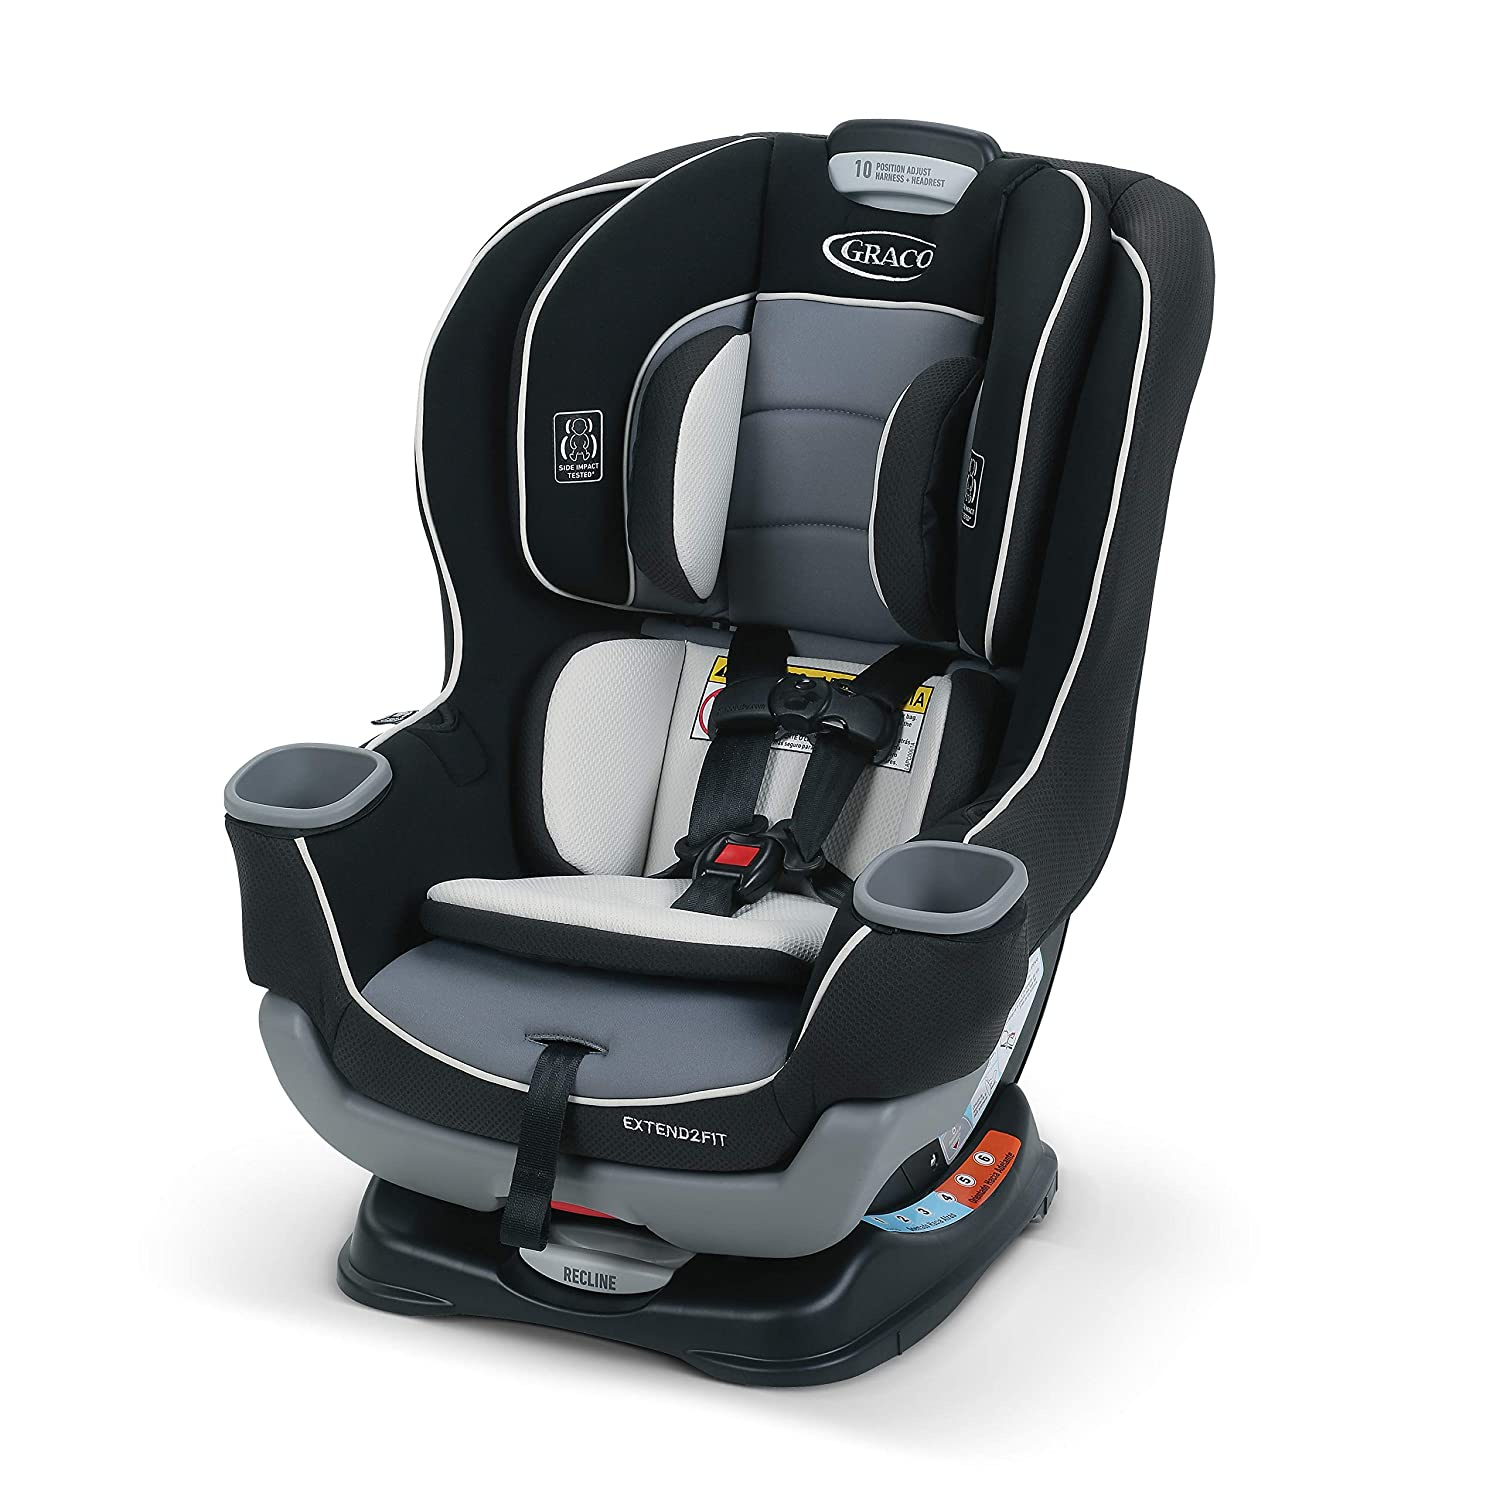 Graco Extend2Fit Convertible Car Seat Gotham main